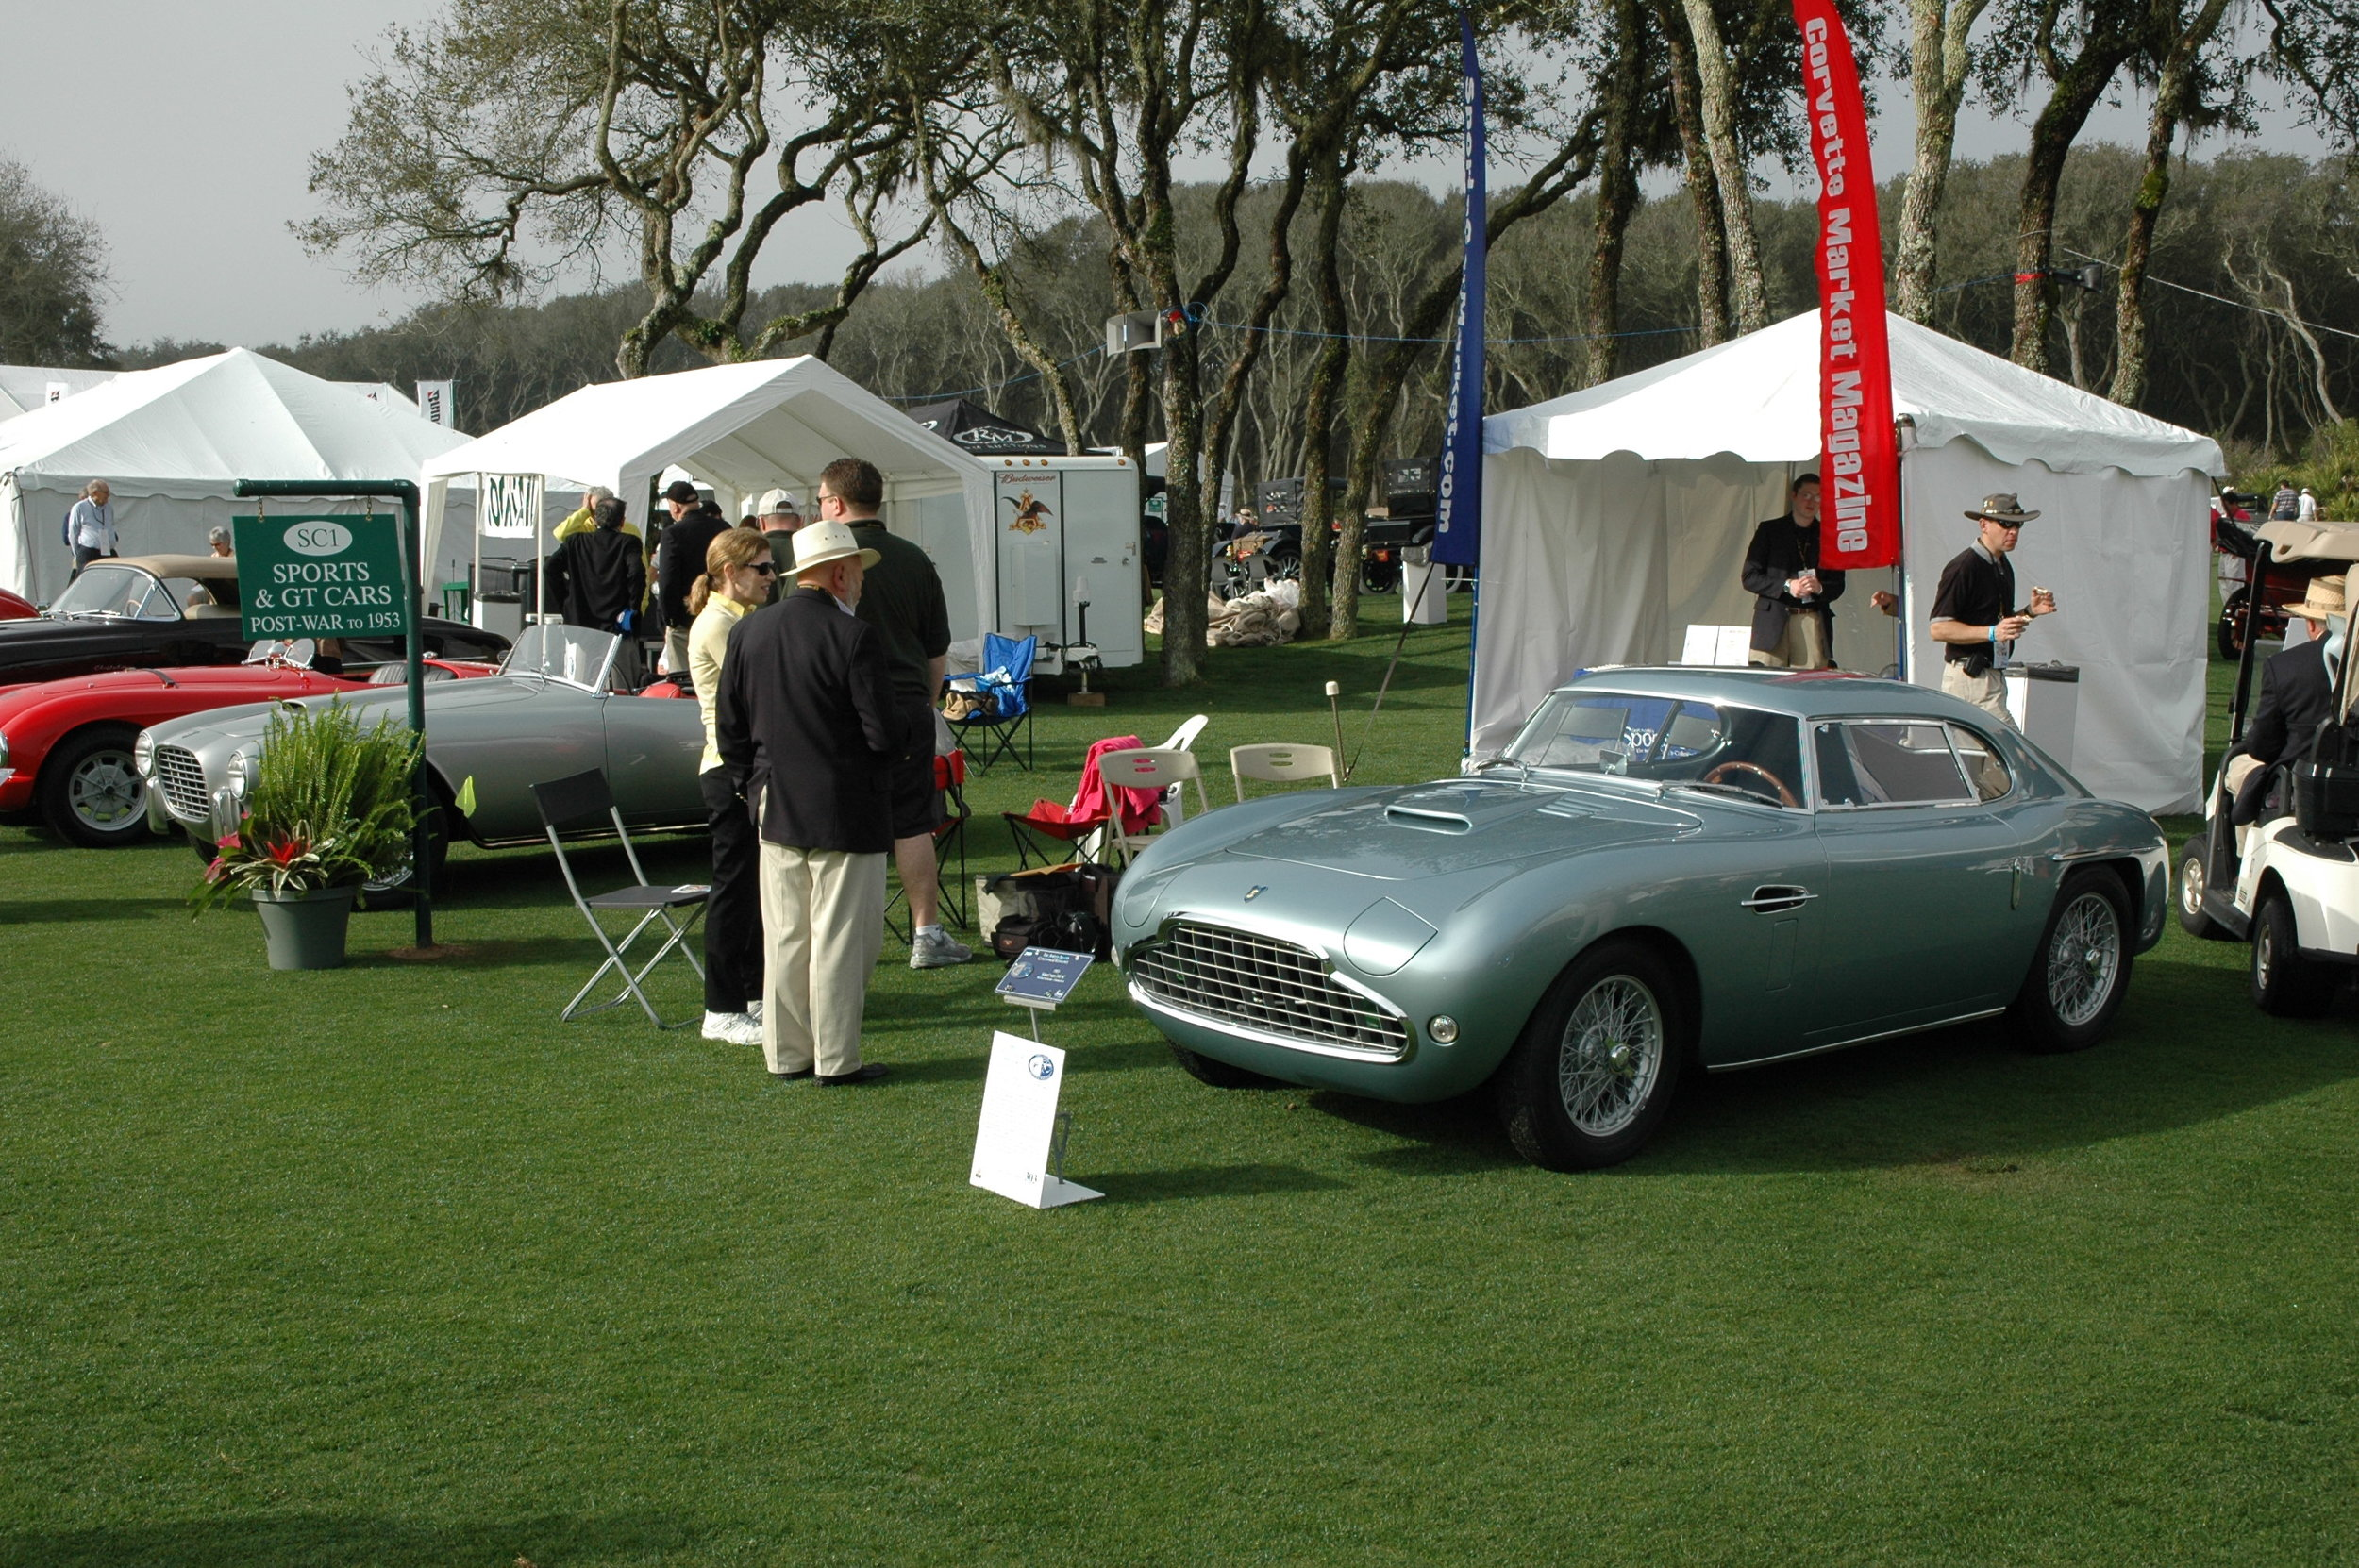 A pair of superb Siatas, 208BS Balbero Coupe in the foreground and that beautiful silver 208 coupe just left